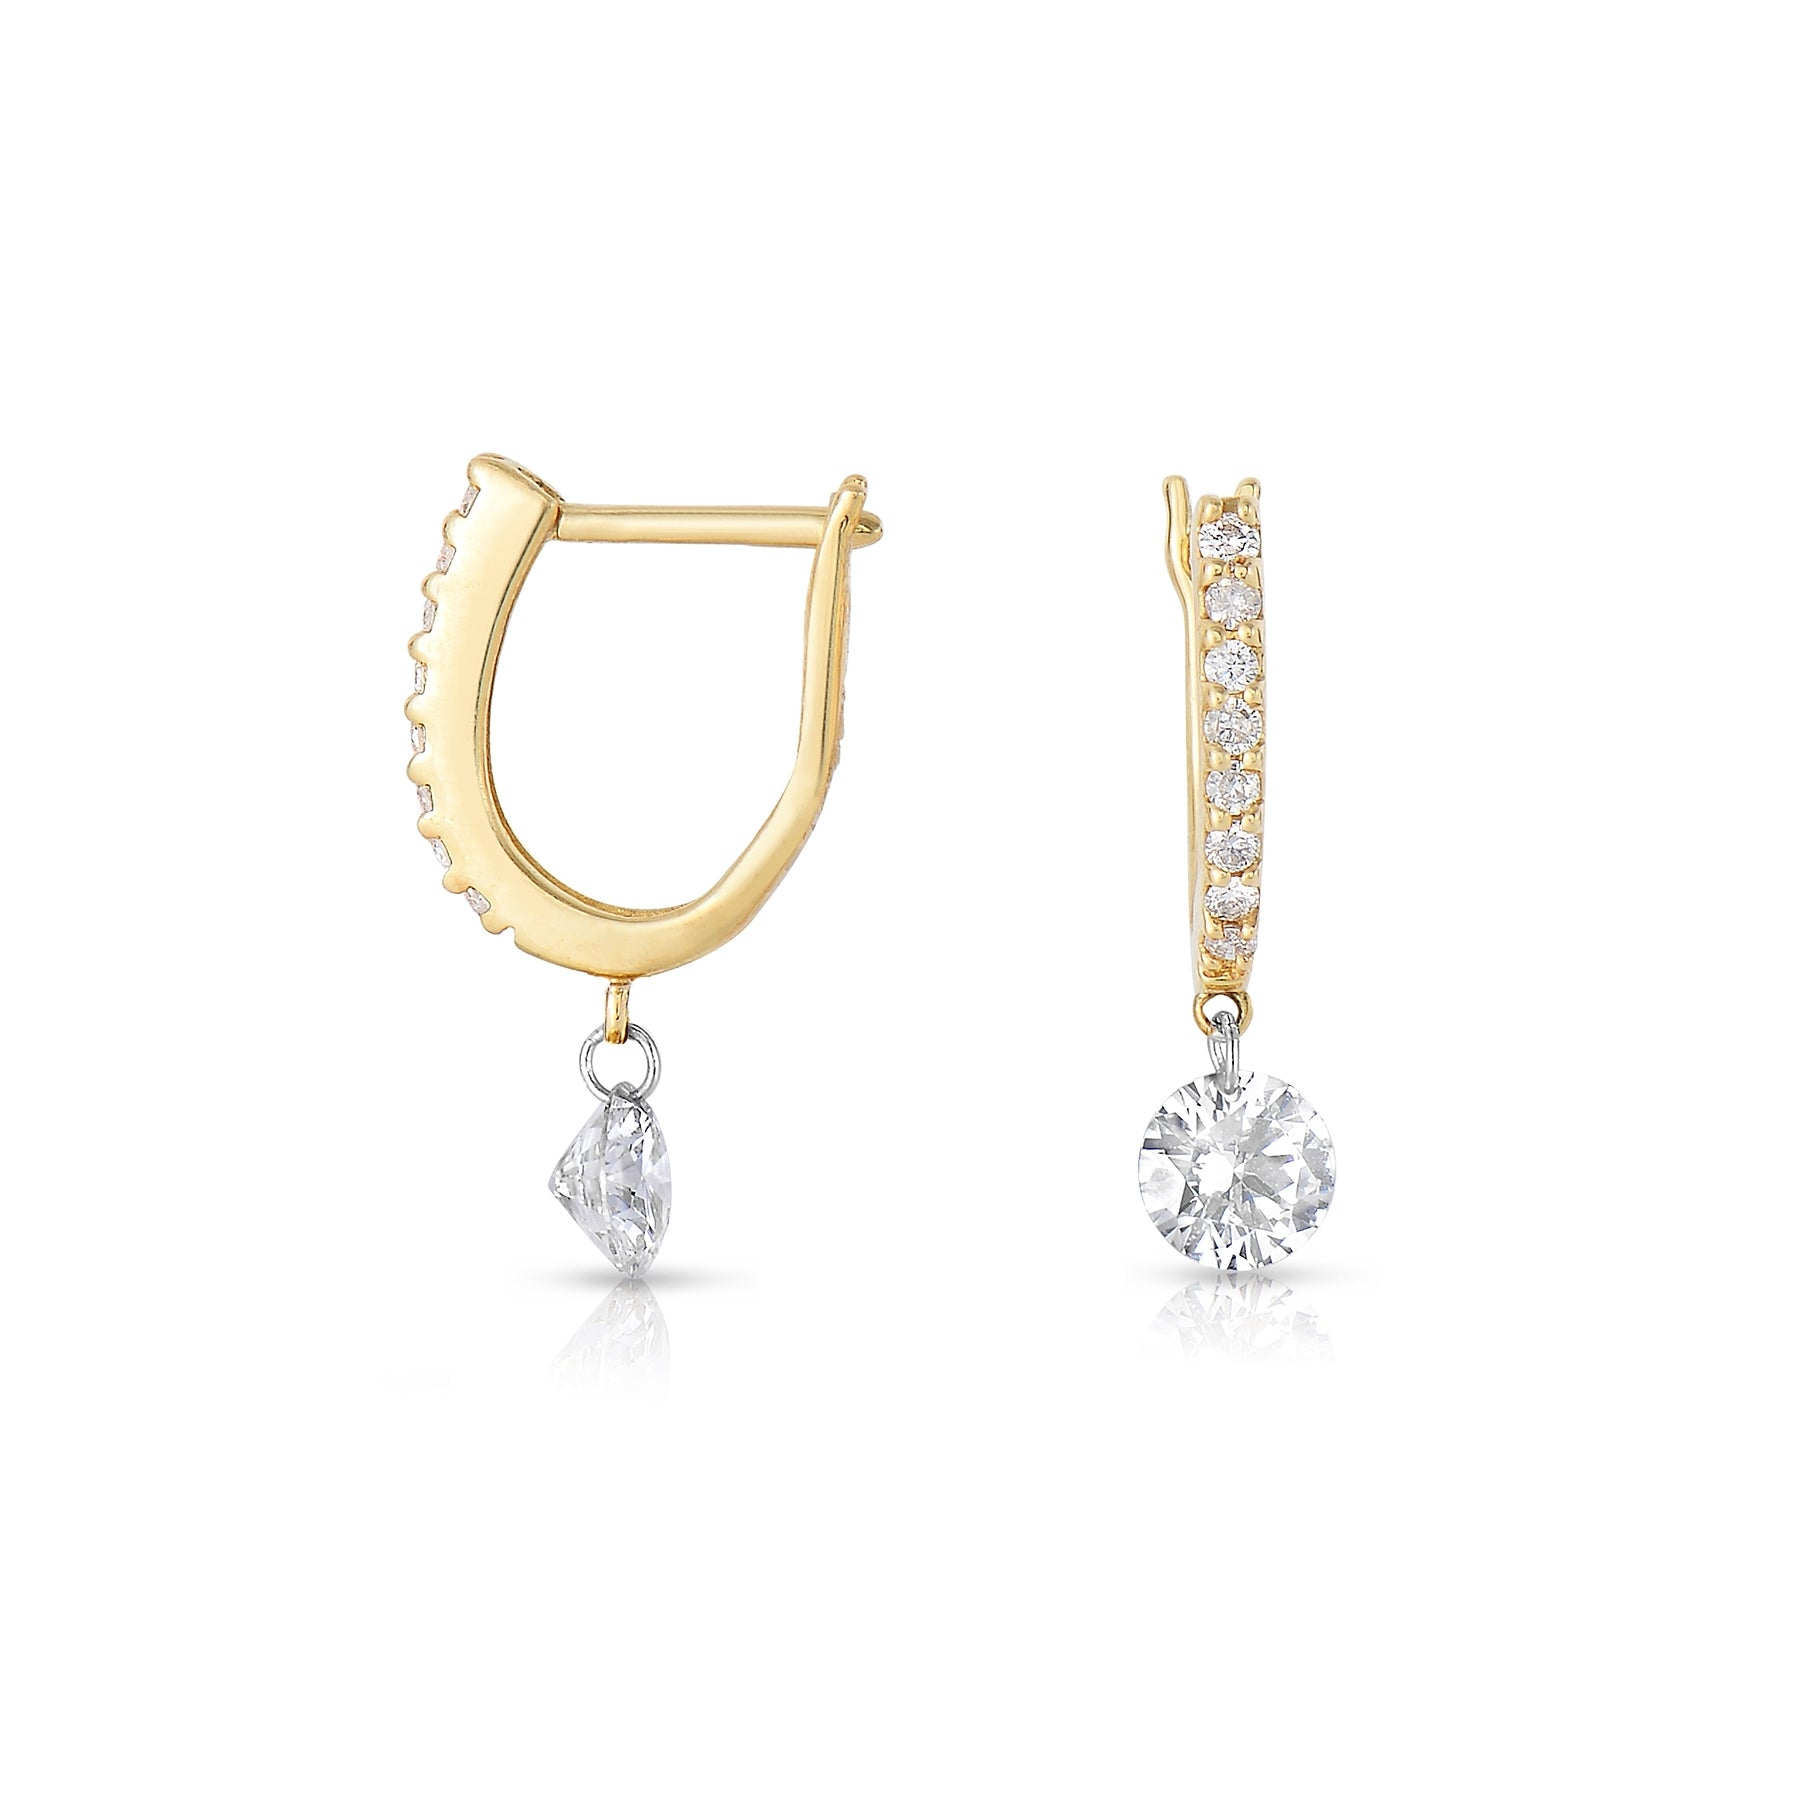 Round Diamond Drop Earrings, 14K Yellow Gold